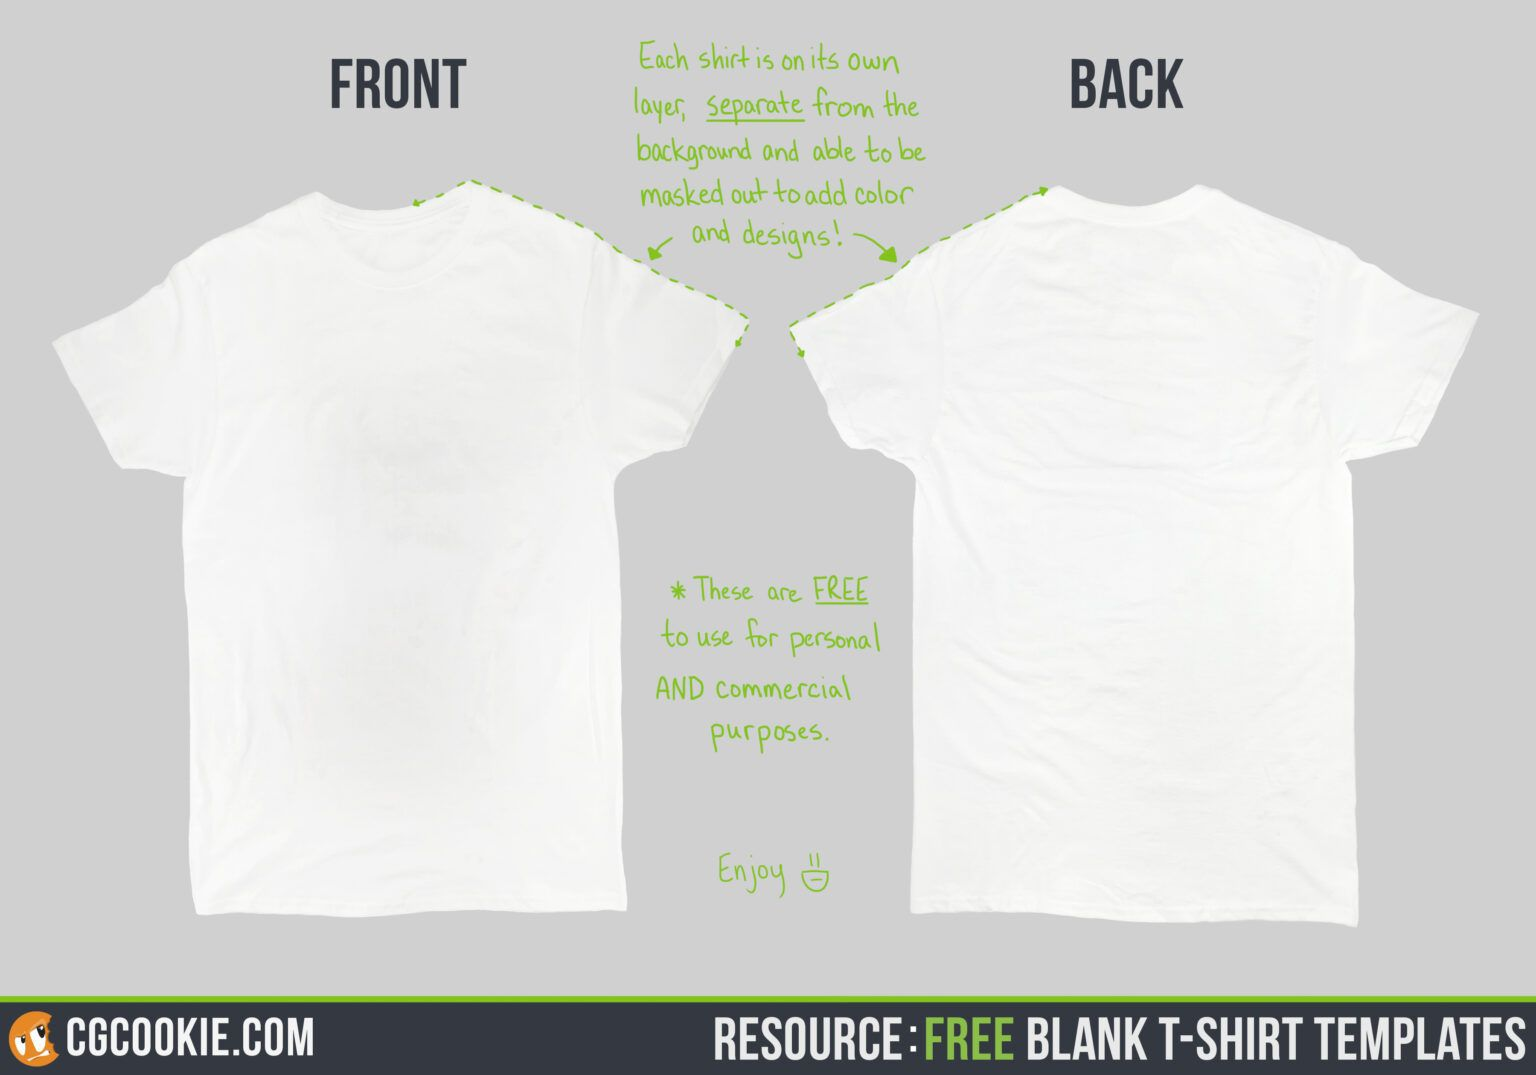 000 Outstanding T Shirt Template Free High Resolution  T-shirt Mockup Download Coreldraw VectorFull